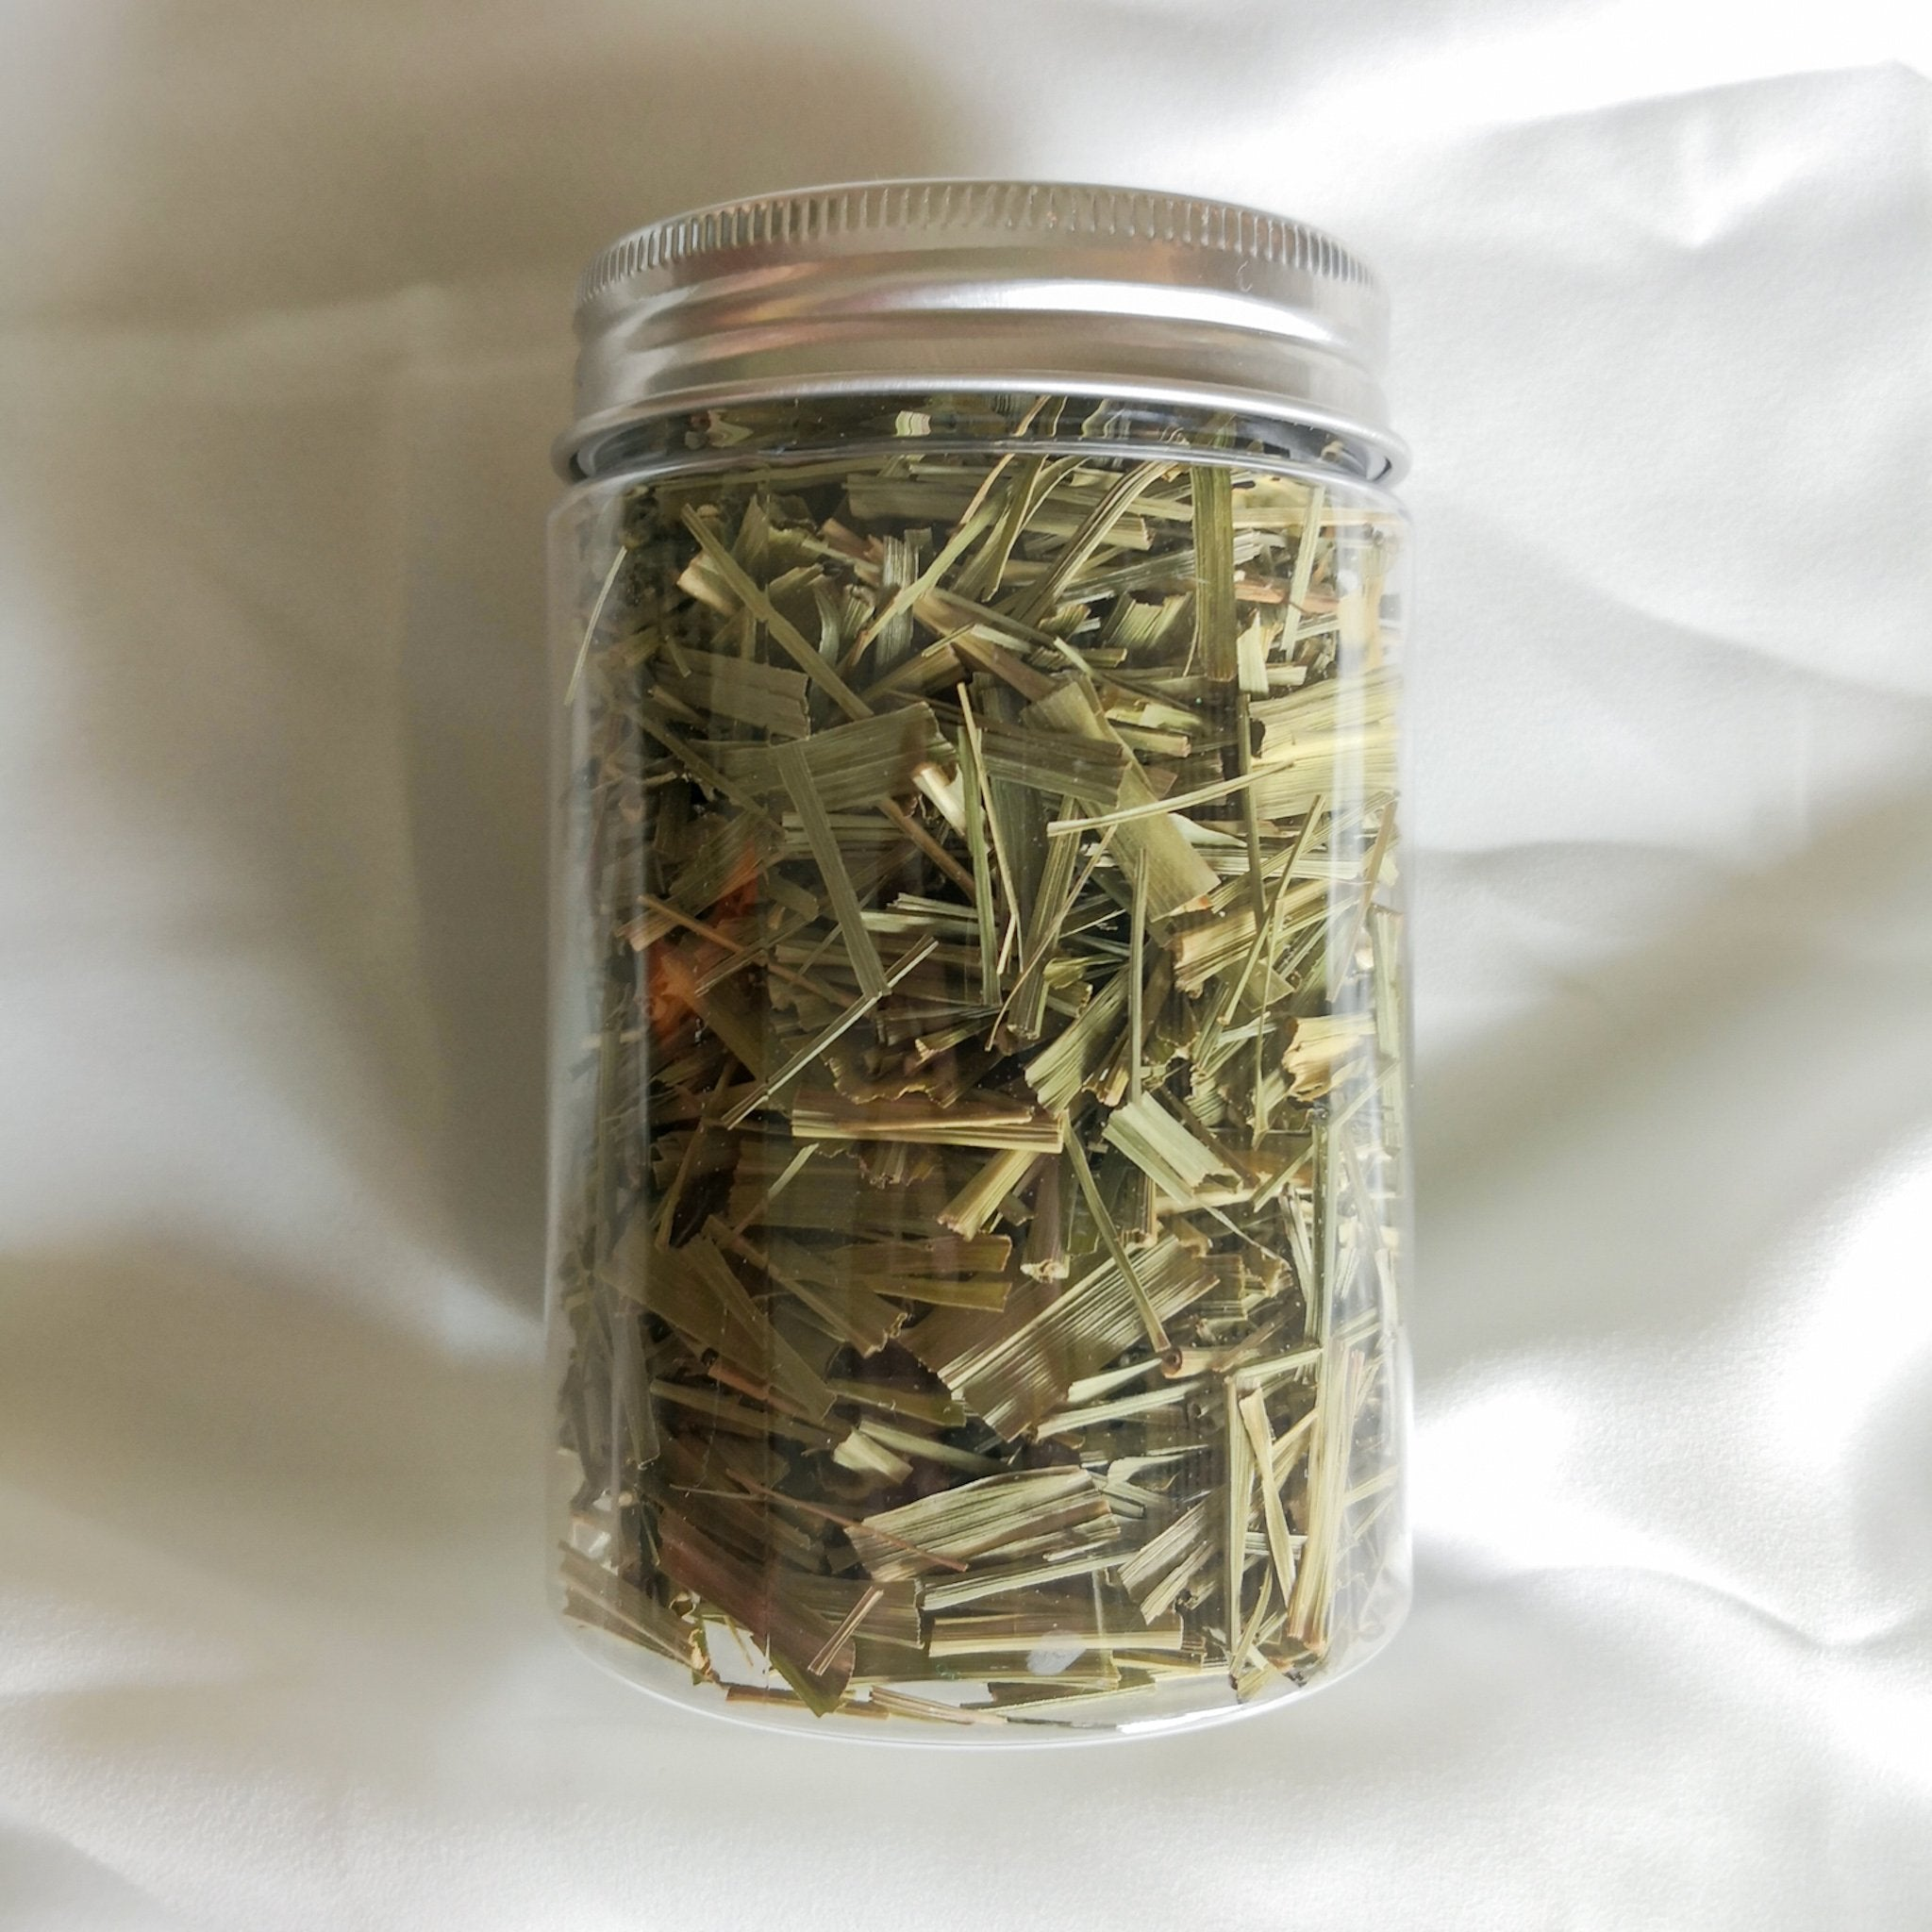 Lemongrass Tea 柠檬草茶 - Beauty Care 抗衰护肤 - Brewiss Tea